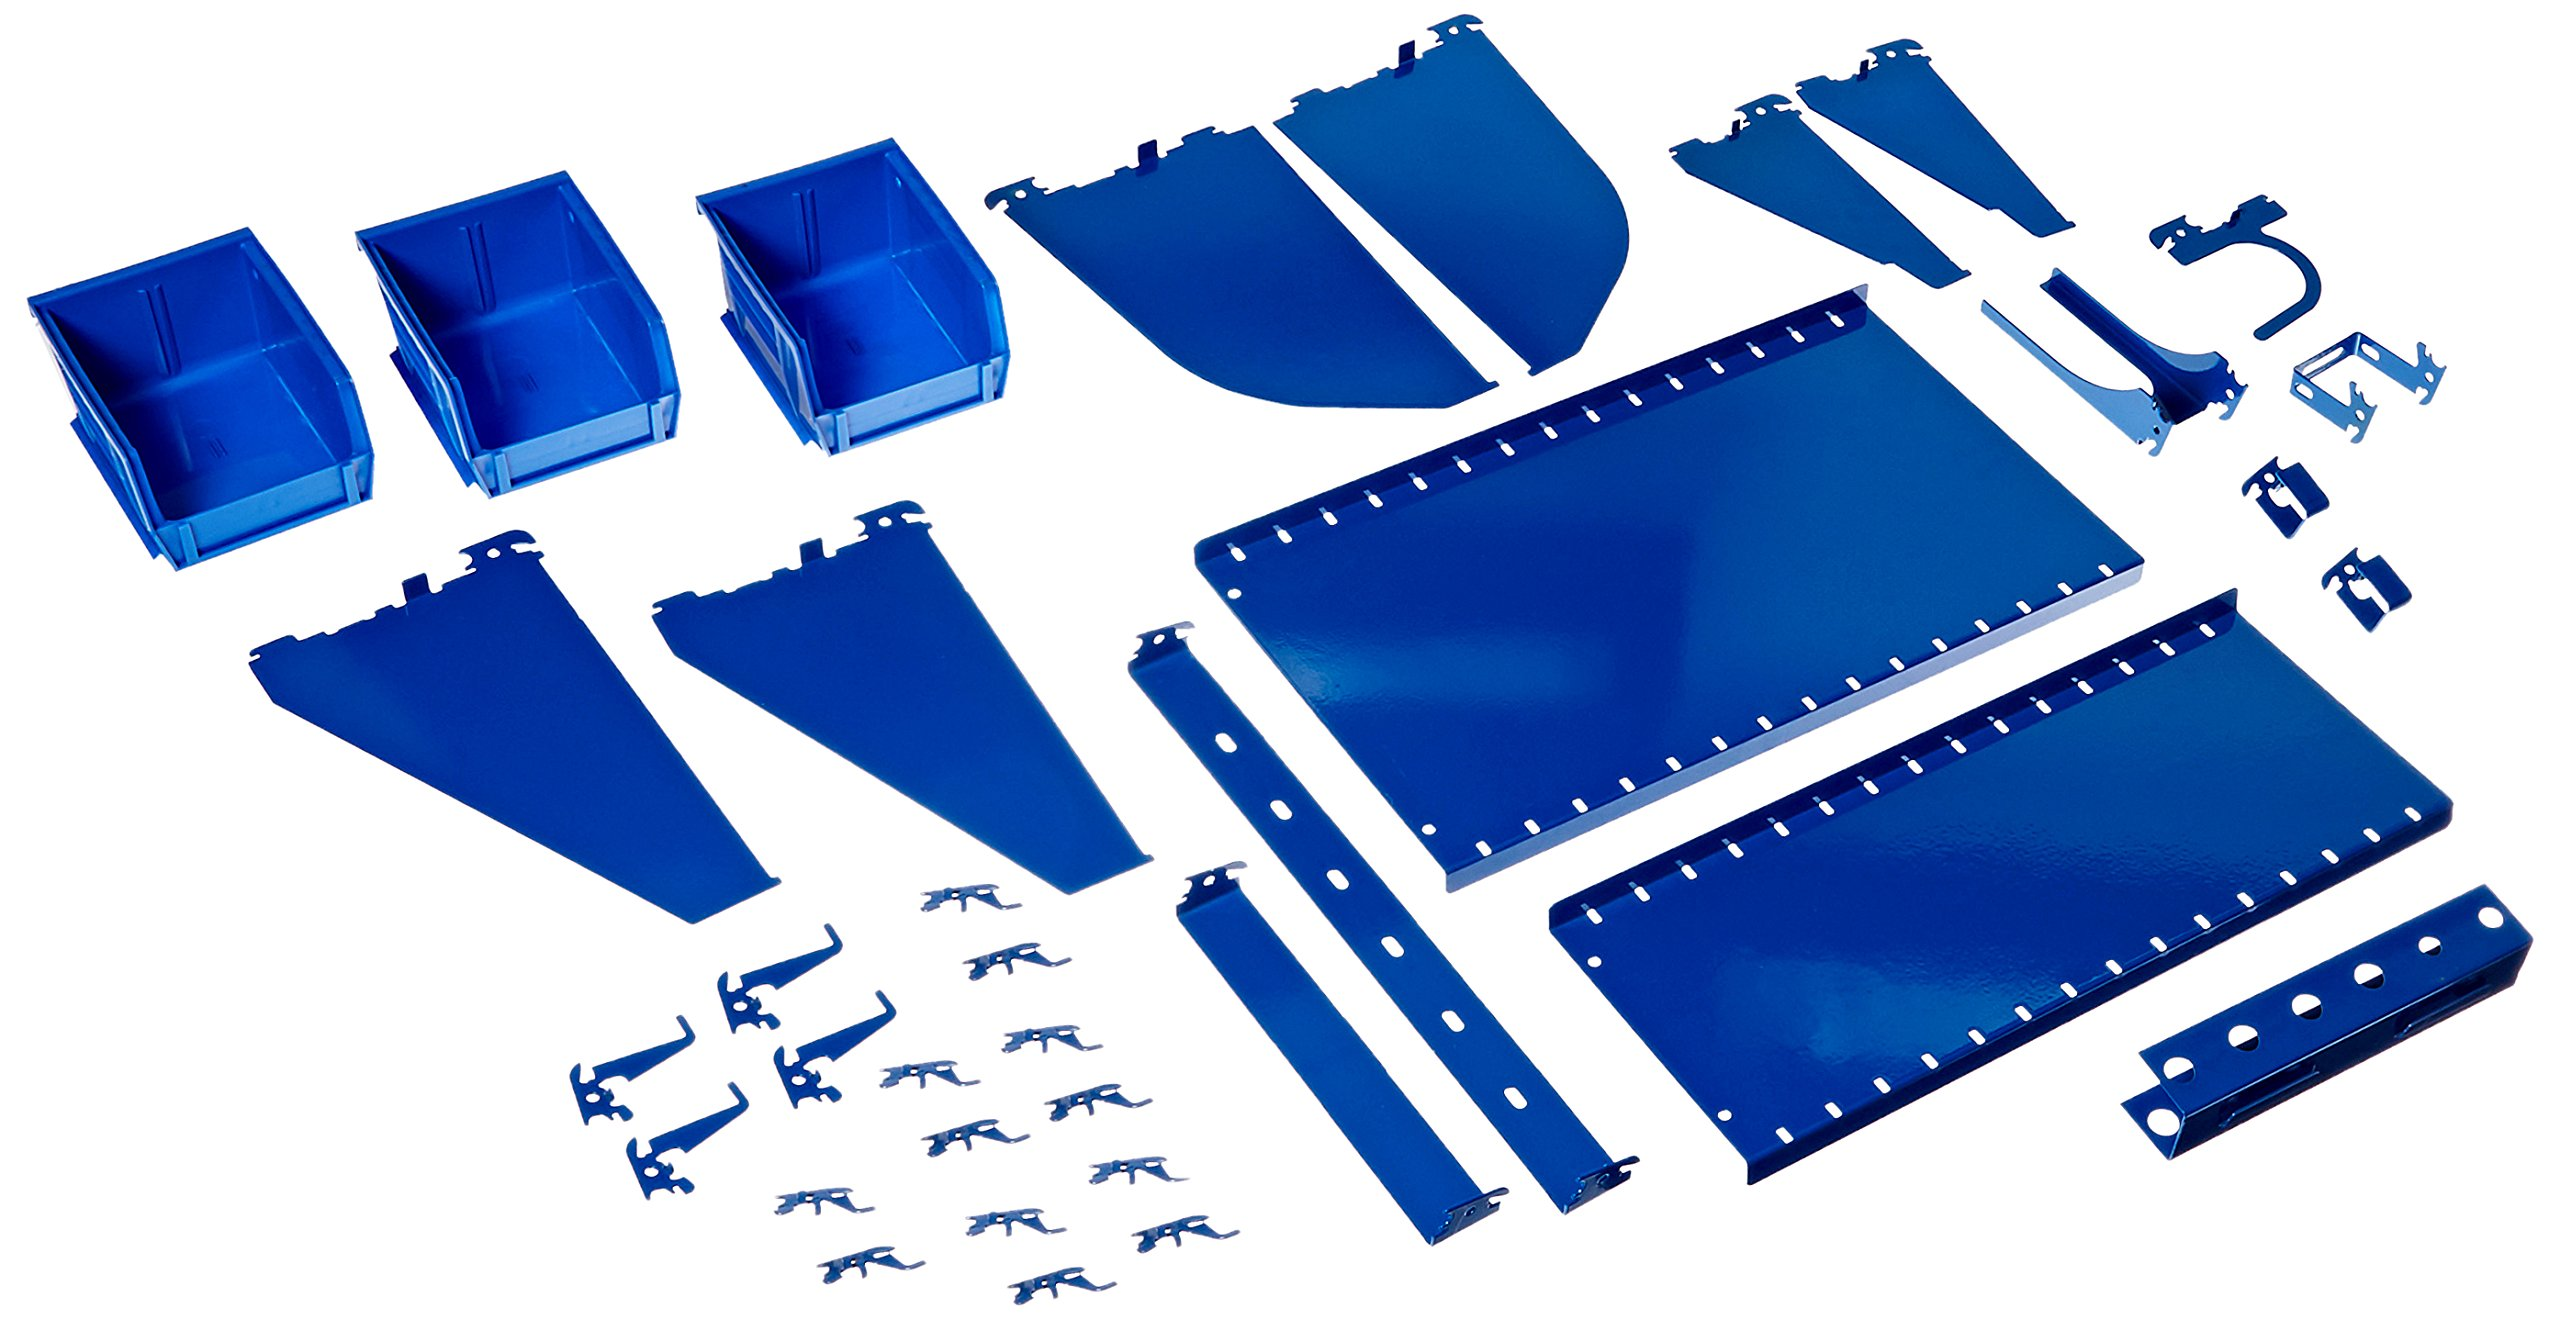 Wall Control KT-400-WRK BU Slotted Tool Board Workstation Accessory Kit for Pegboard Only, Blue